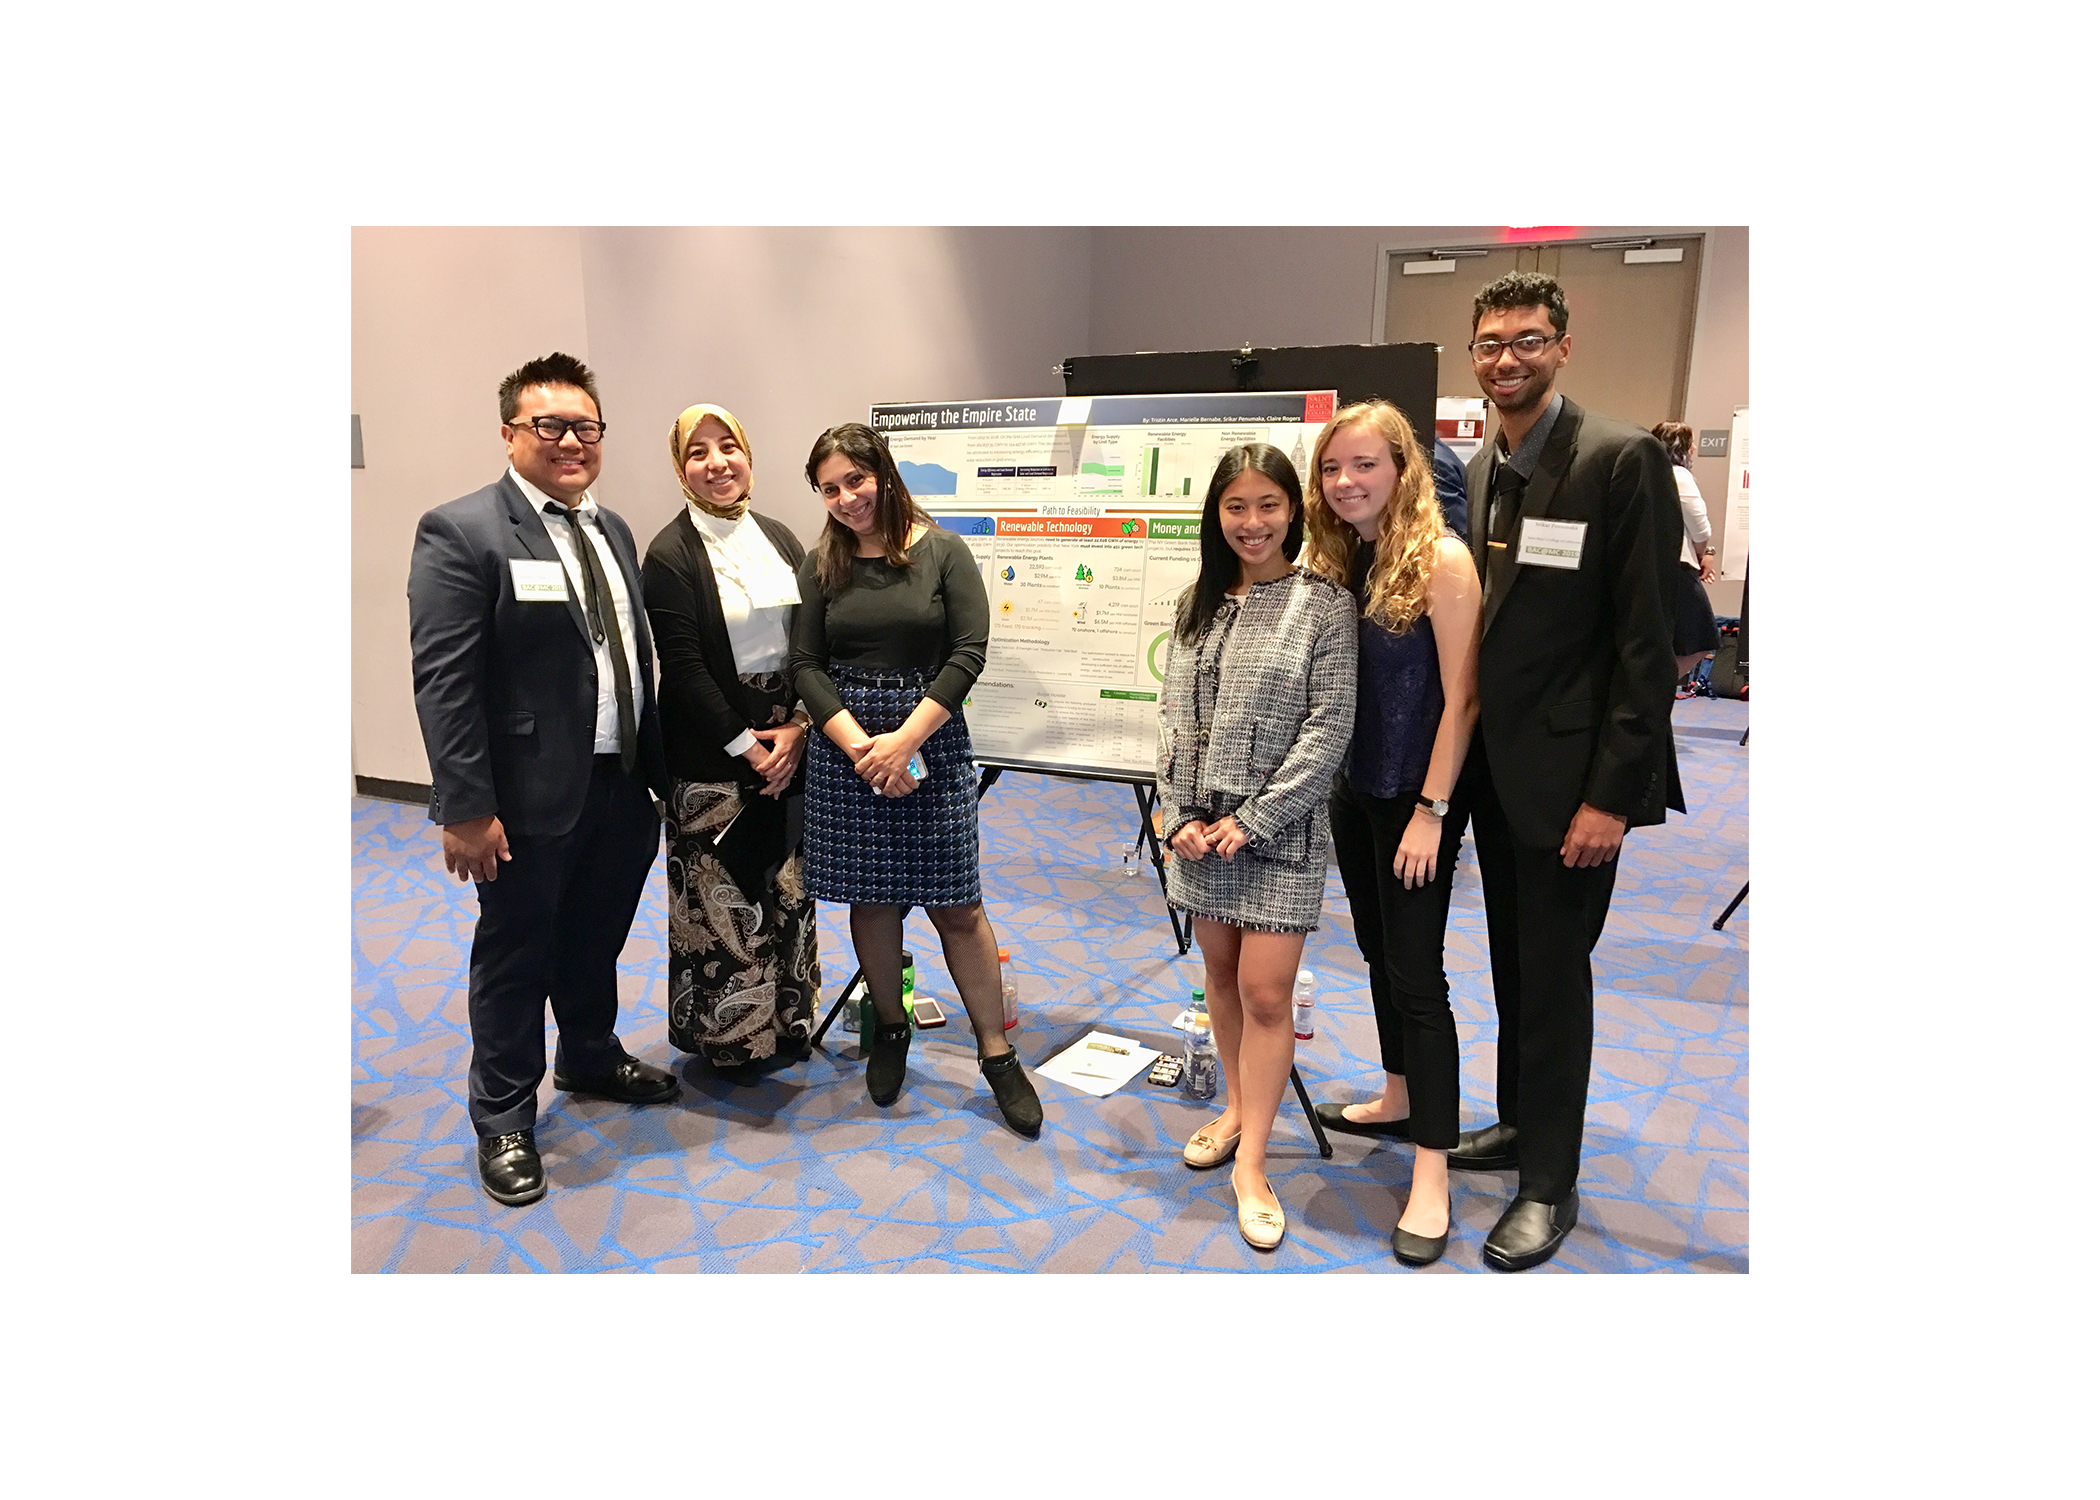 1st Place Business Analytics Poster Team members: SMC's Business Analytics students Tristin Arce '19, Marielle Bernabe '19, Srikar Penumaka '20, and Claire Rogers '19 won first place with their poster, Empowering the Empire State.